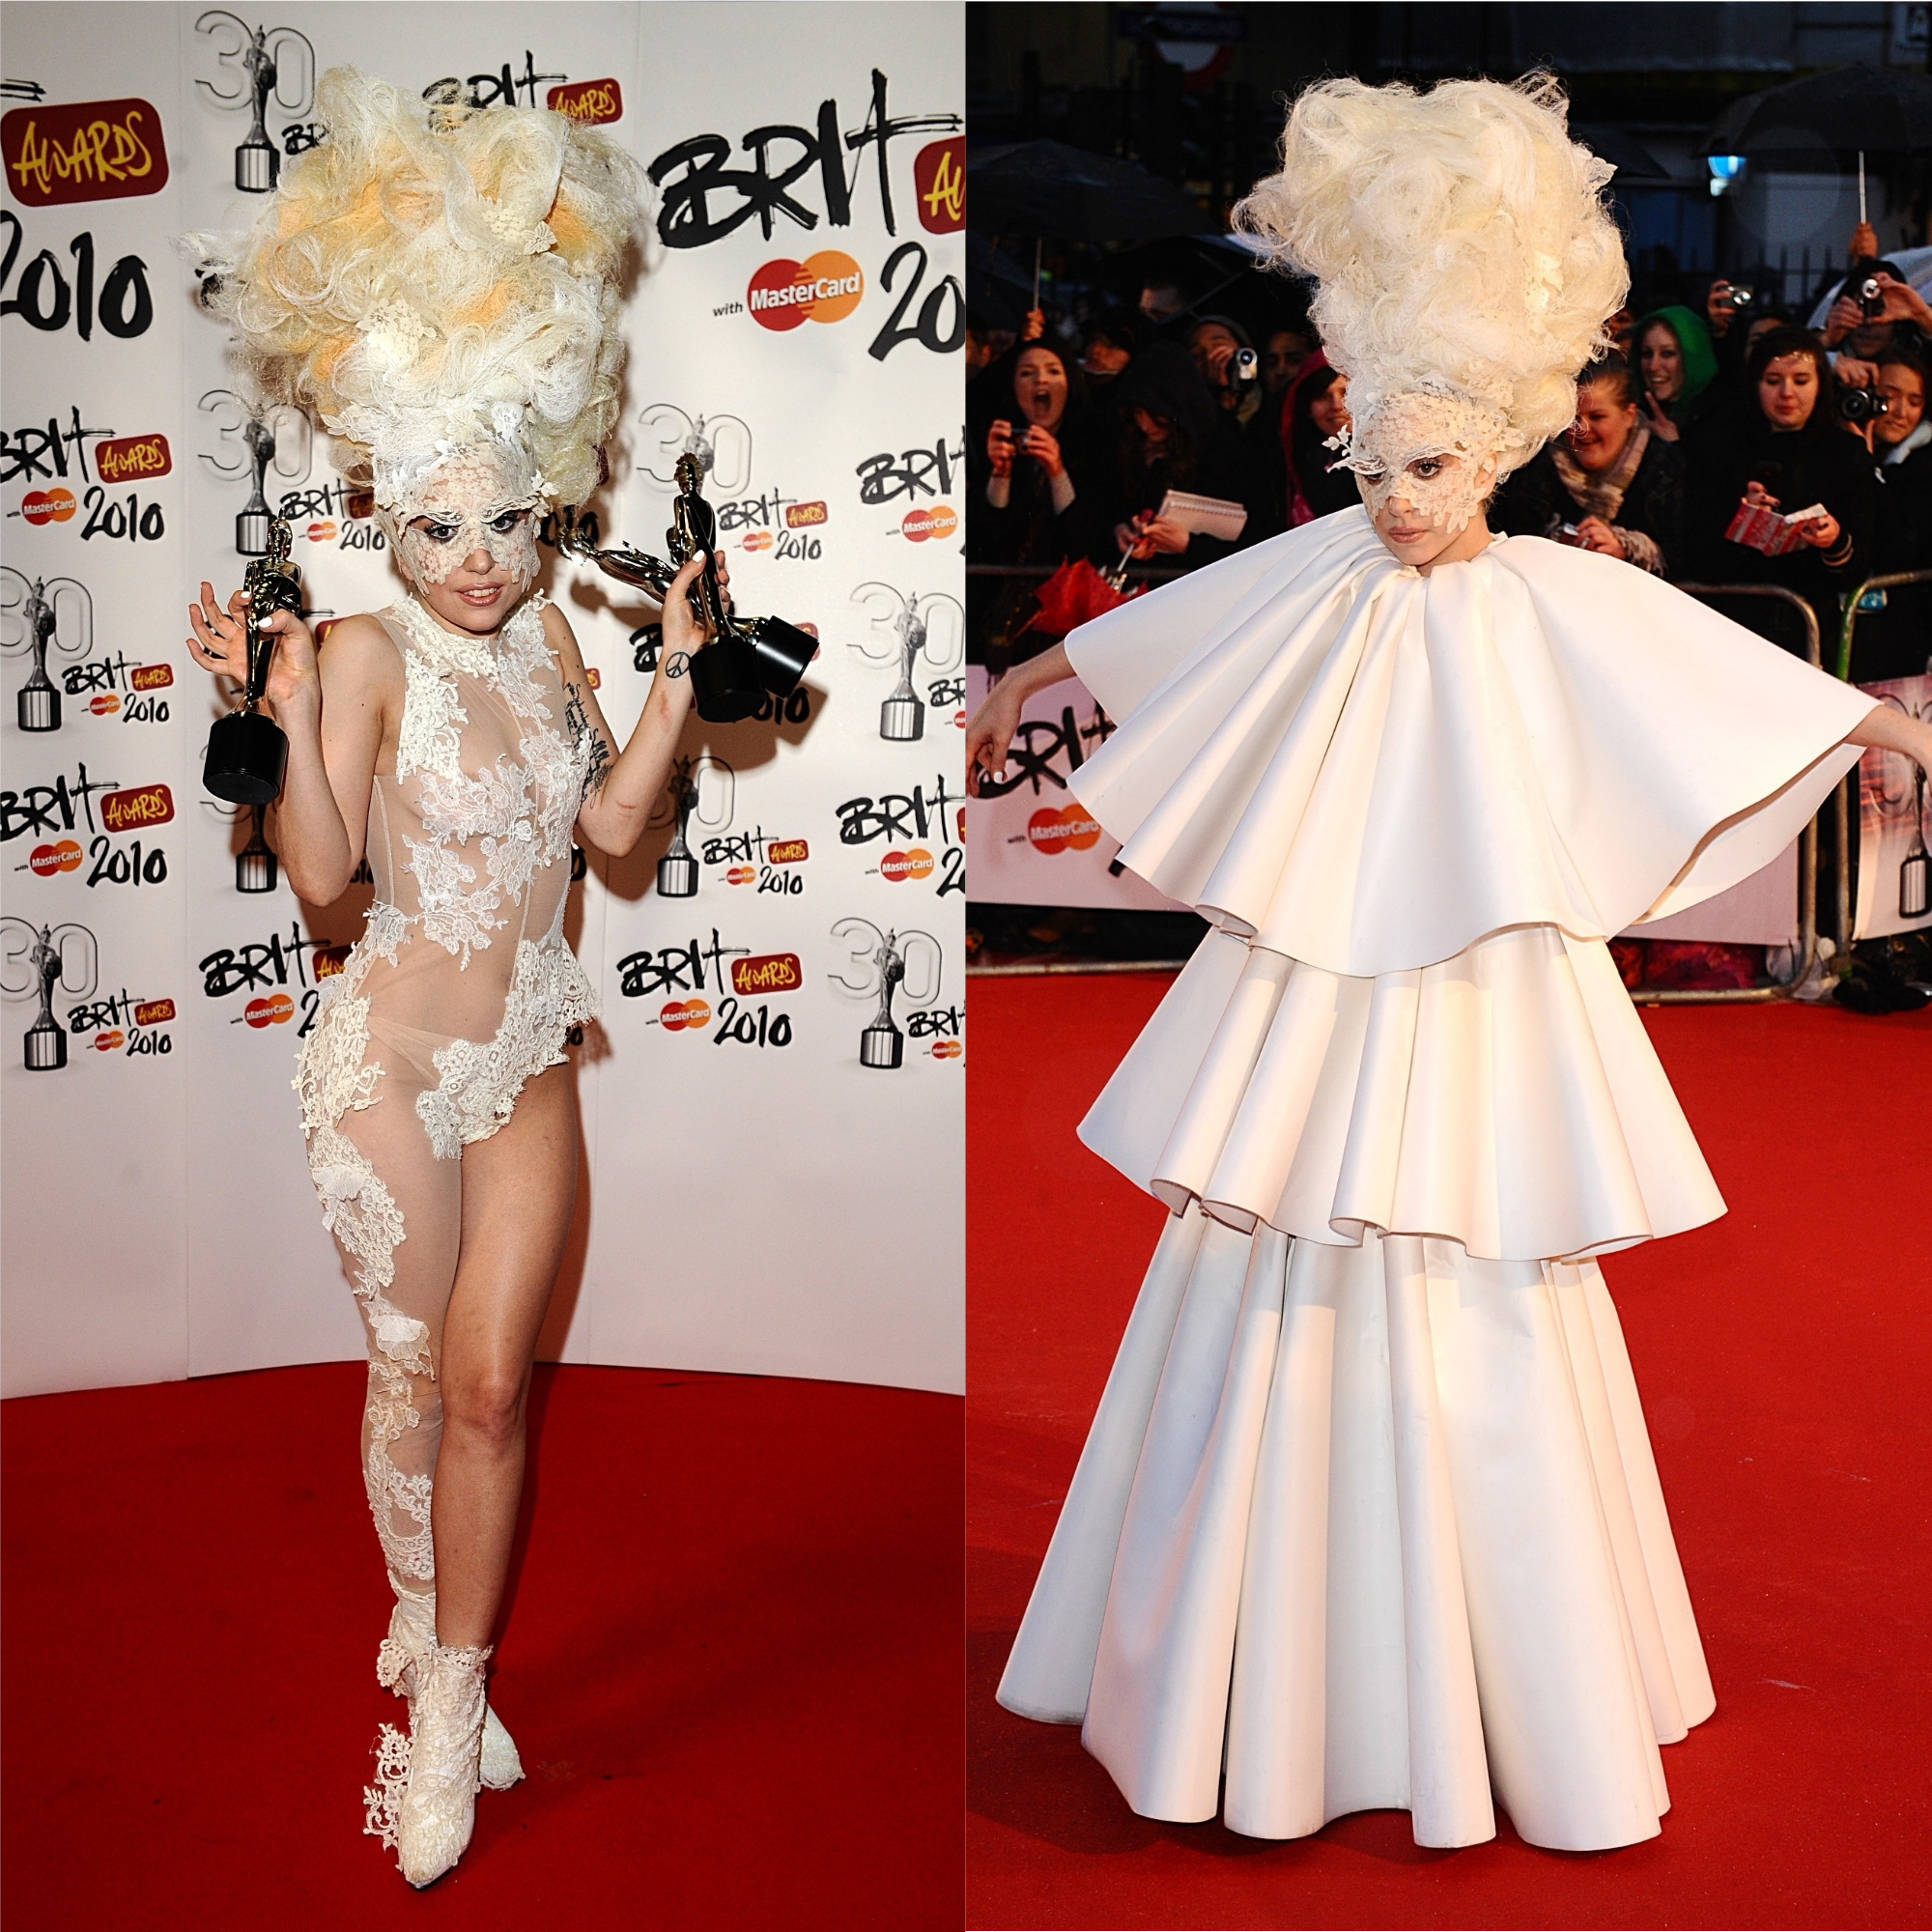 Lady Gaga in 2010